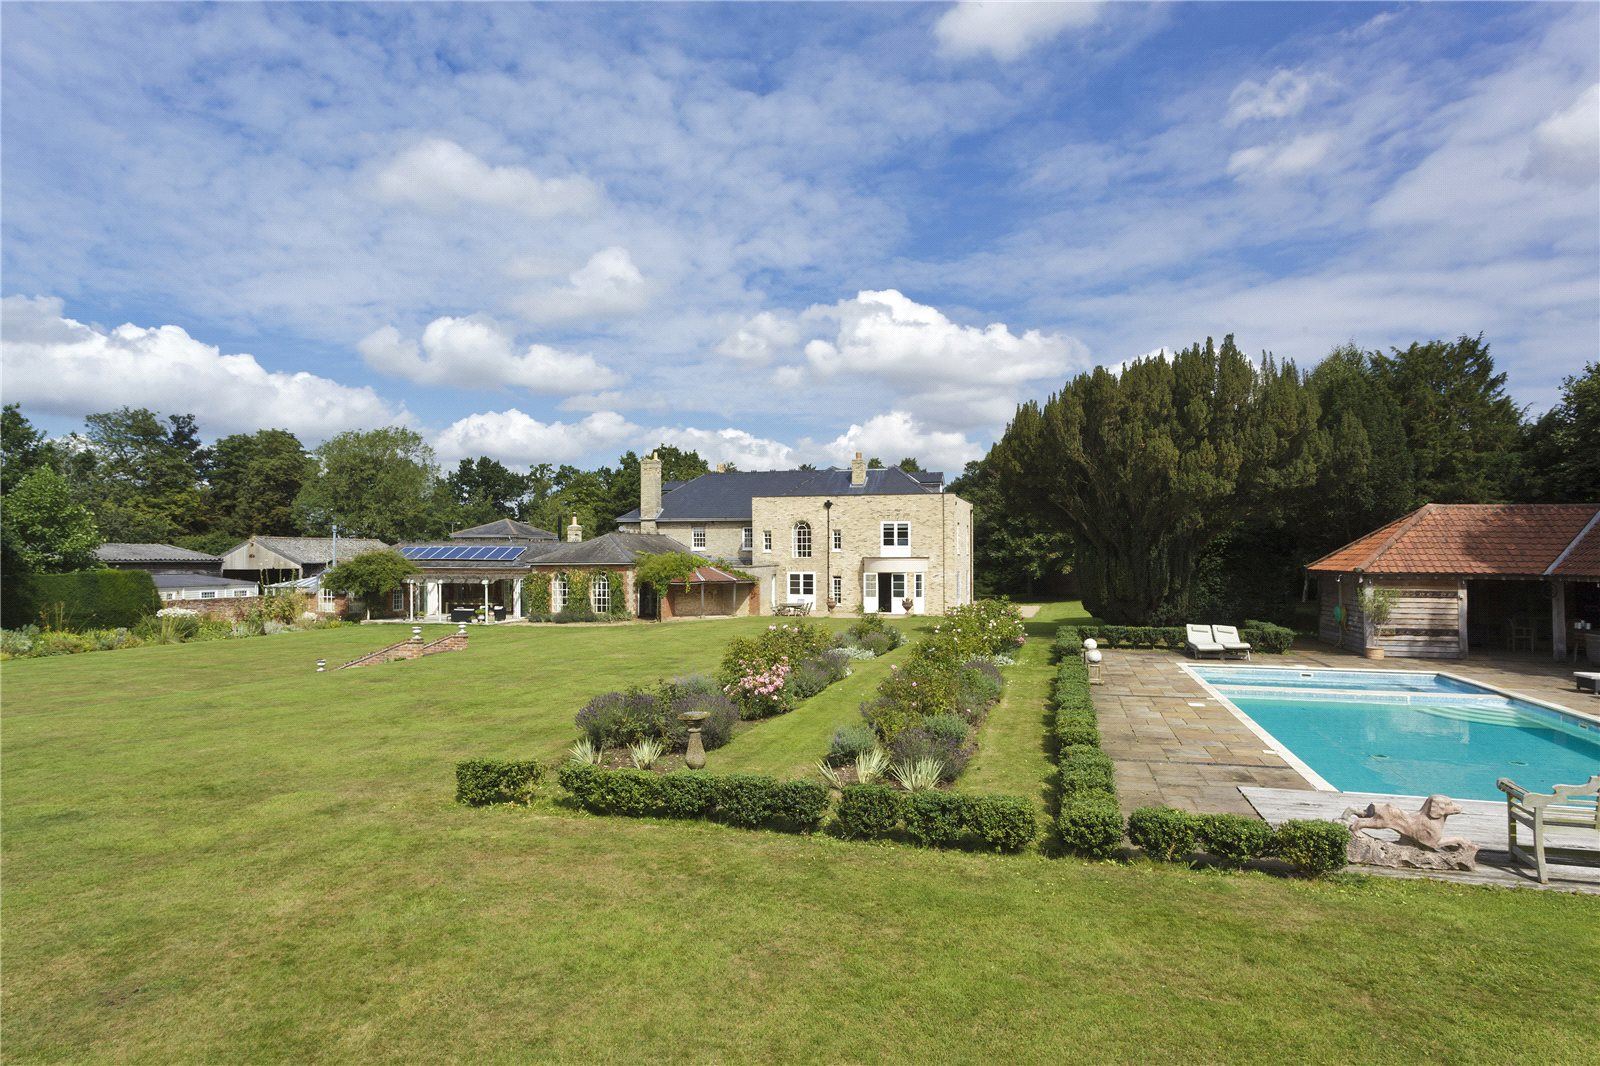 Single Family Home for Sale at Drinkstone, Bury St. Edmunds, Suffolk, IP30 Suffolk, England